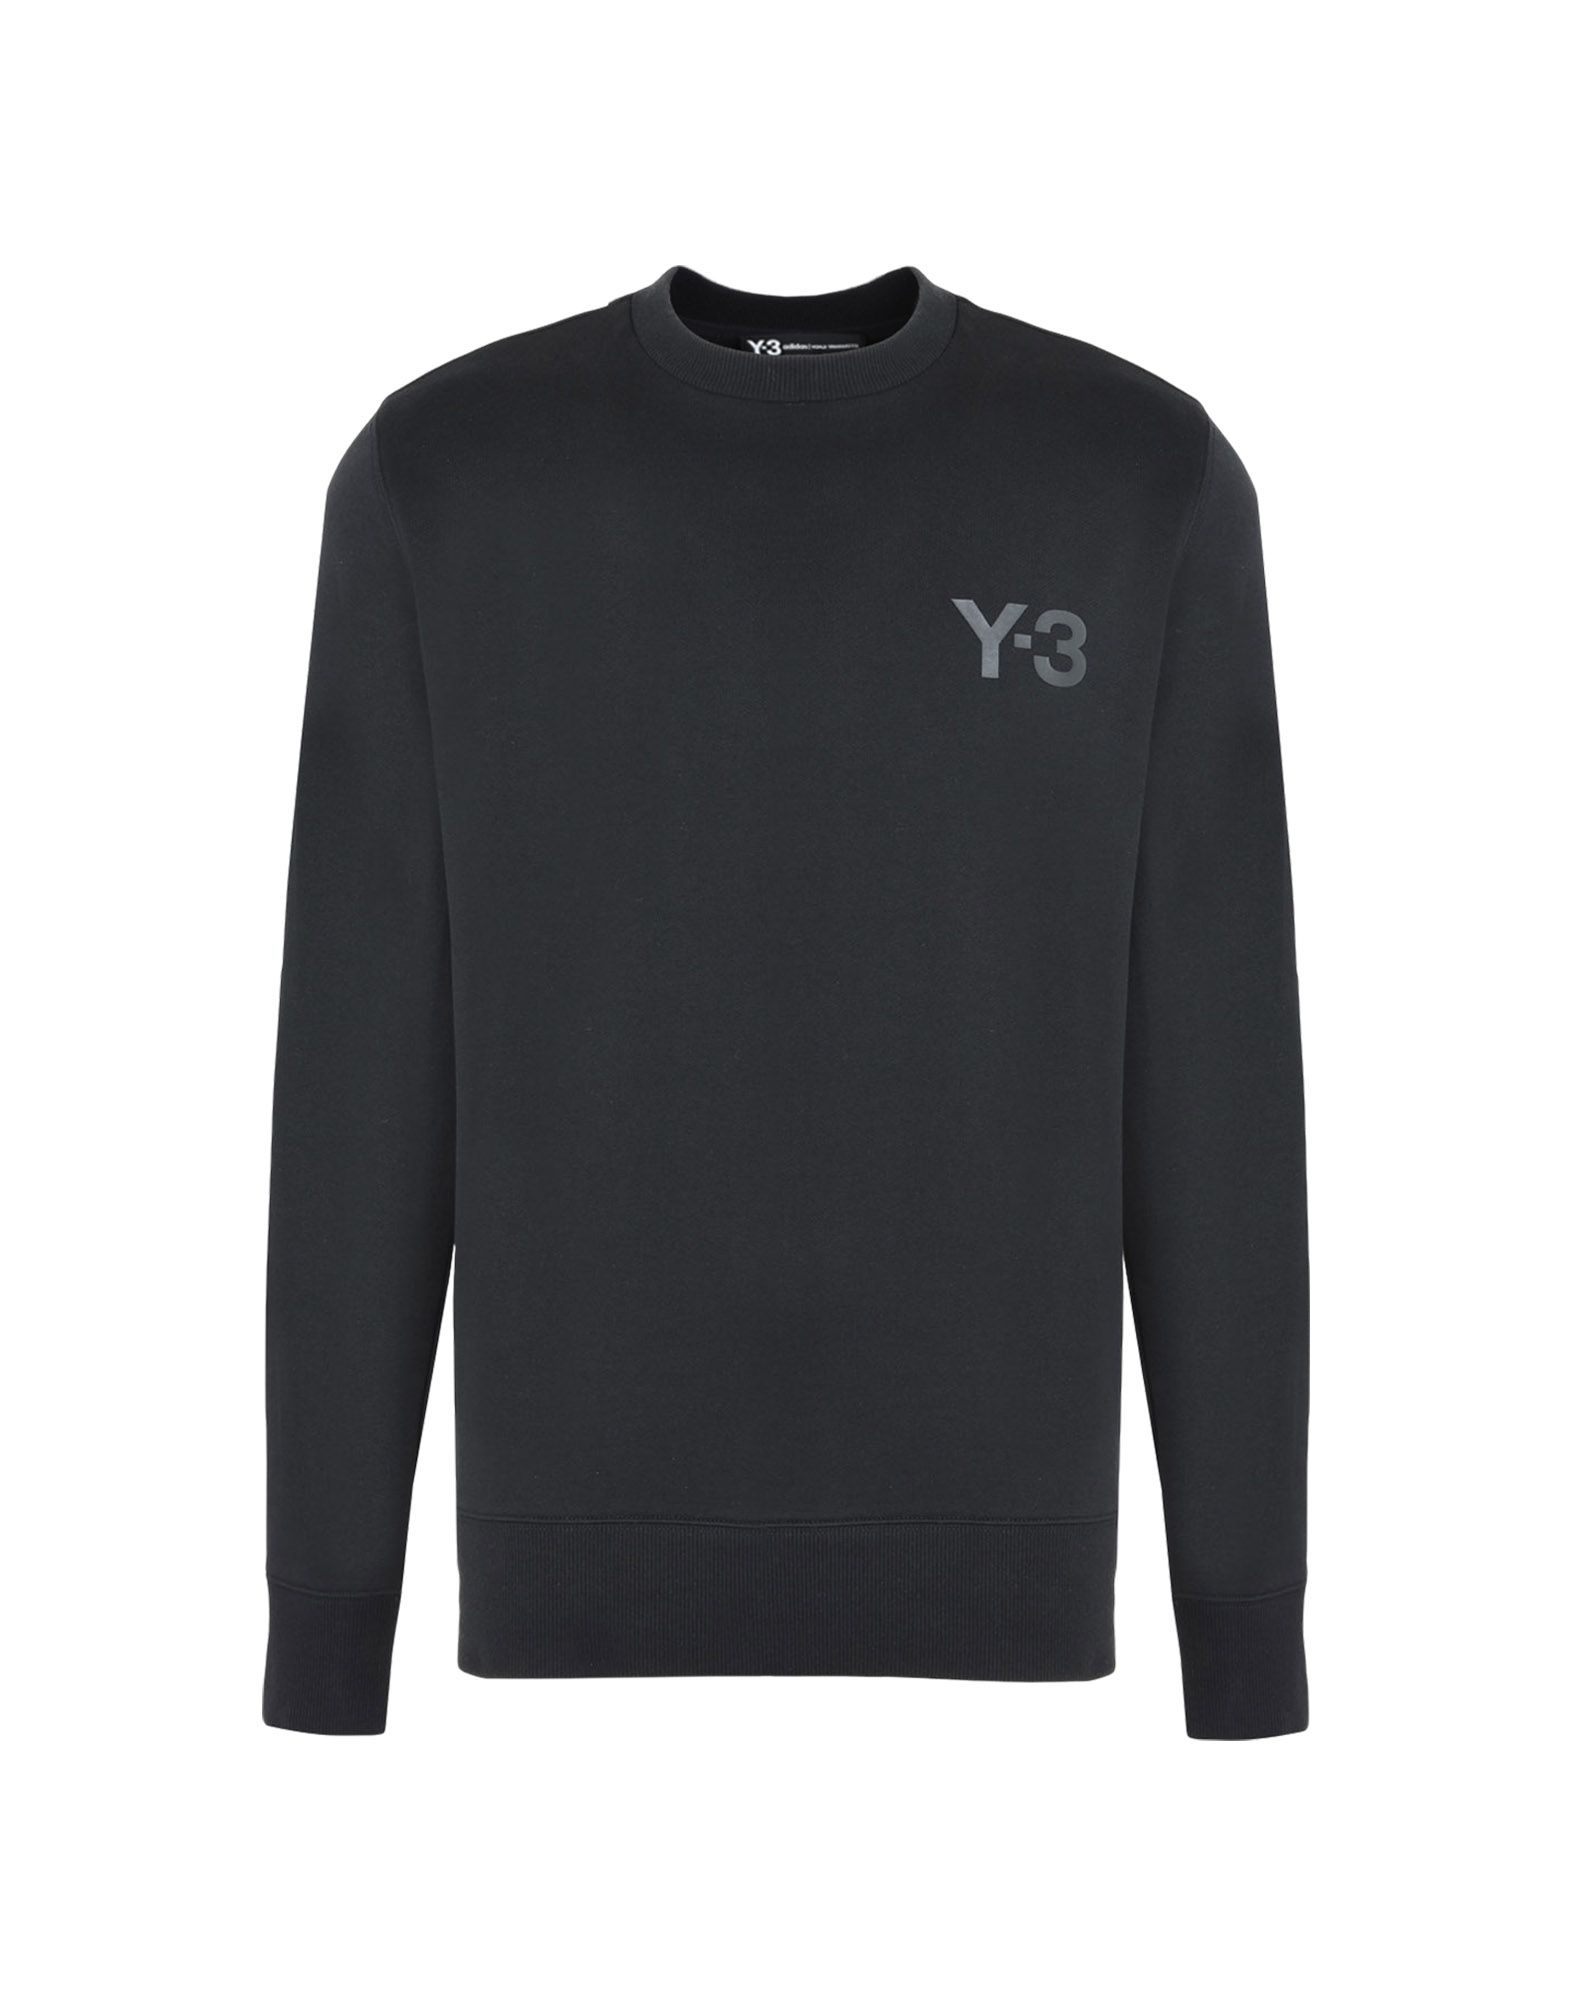 Y 3 CLASSIC SWEATER Black for Men | Adidas Y-3 Official Store